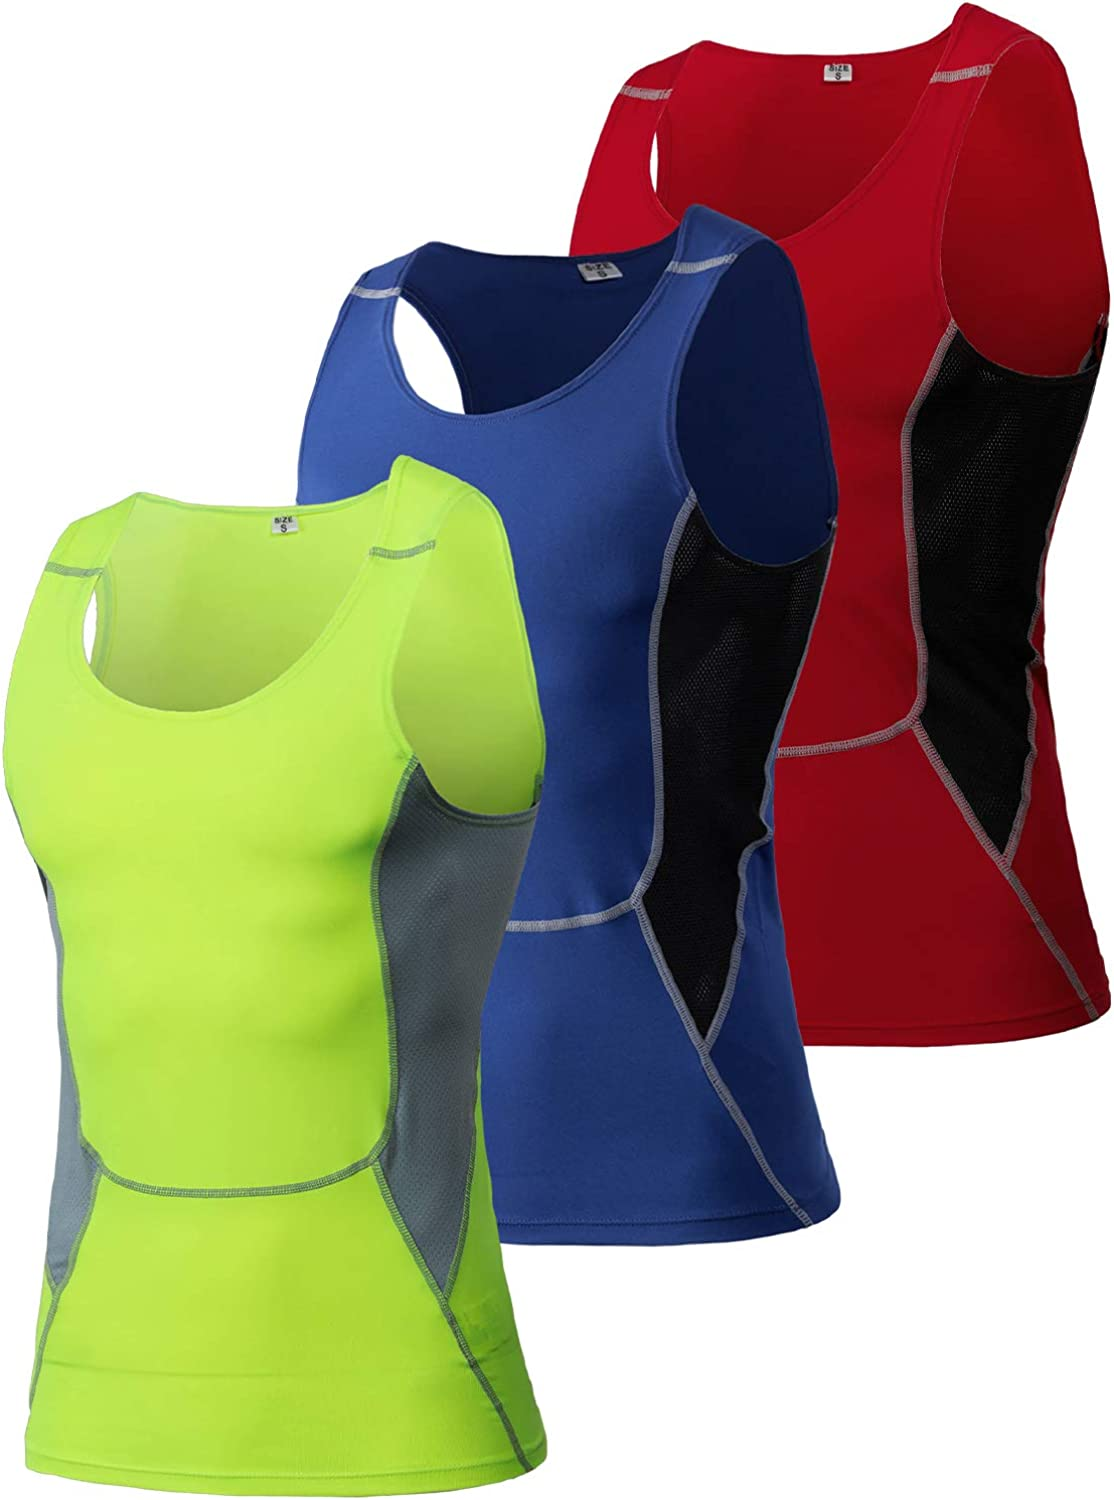 Yuerlian Mens Compression Tank Top Sleeveless Muscle Tank Top Cool Dry Base Layer Sleeveless Sports Tank Top